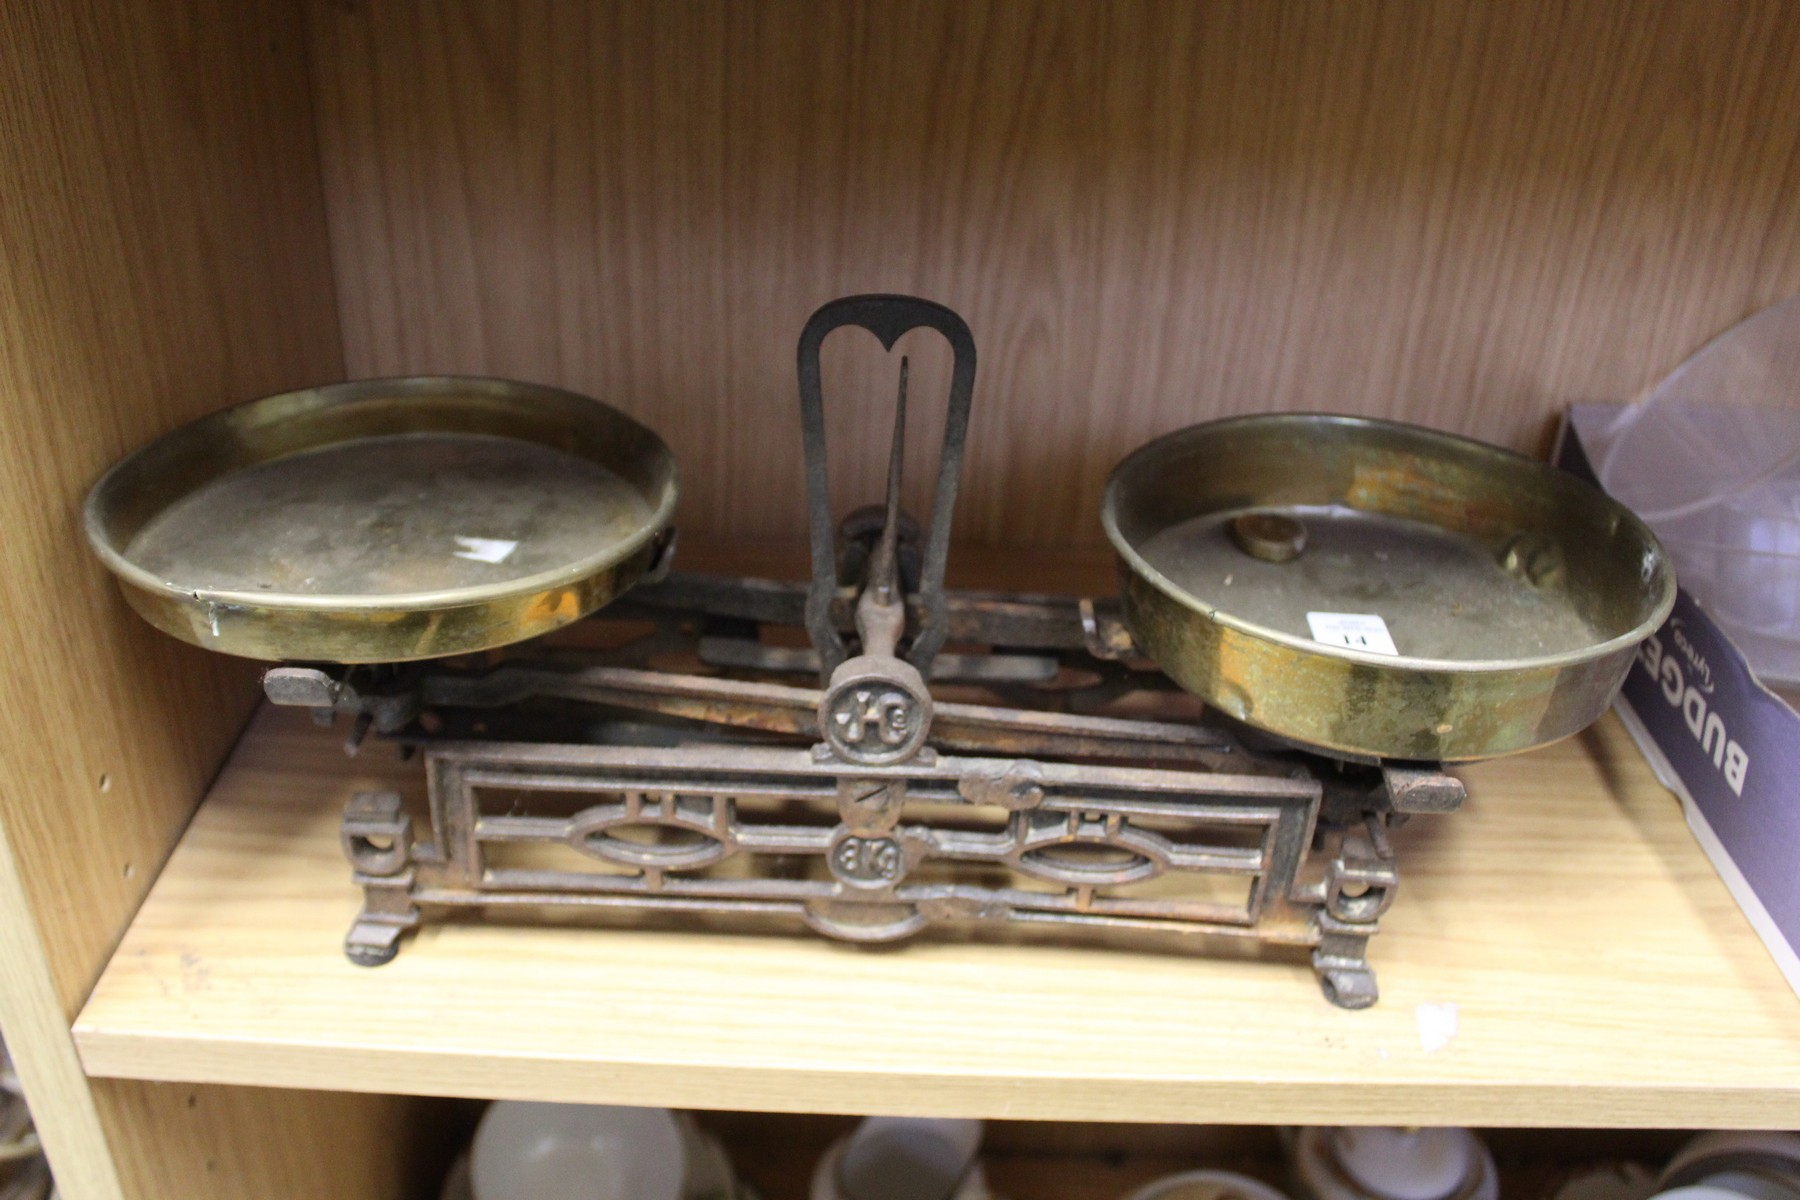 Weighing scales.